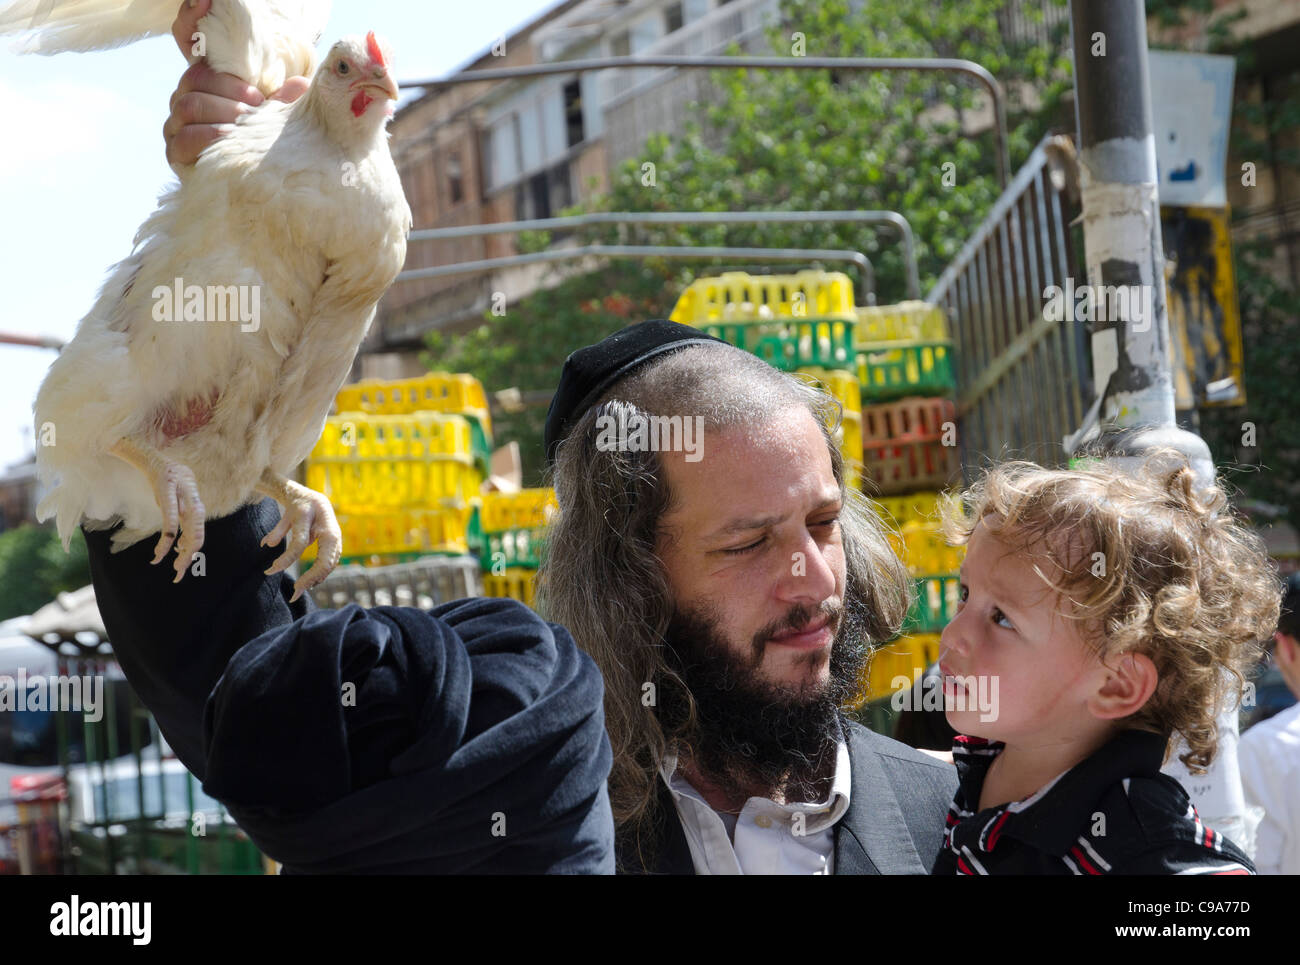 Orthodox jew with toddler performing the Kapparot ritual with a chicken. Mea shearim neighbourghood. Jerusalem - Stock Image